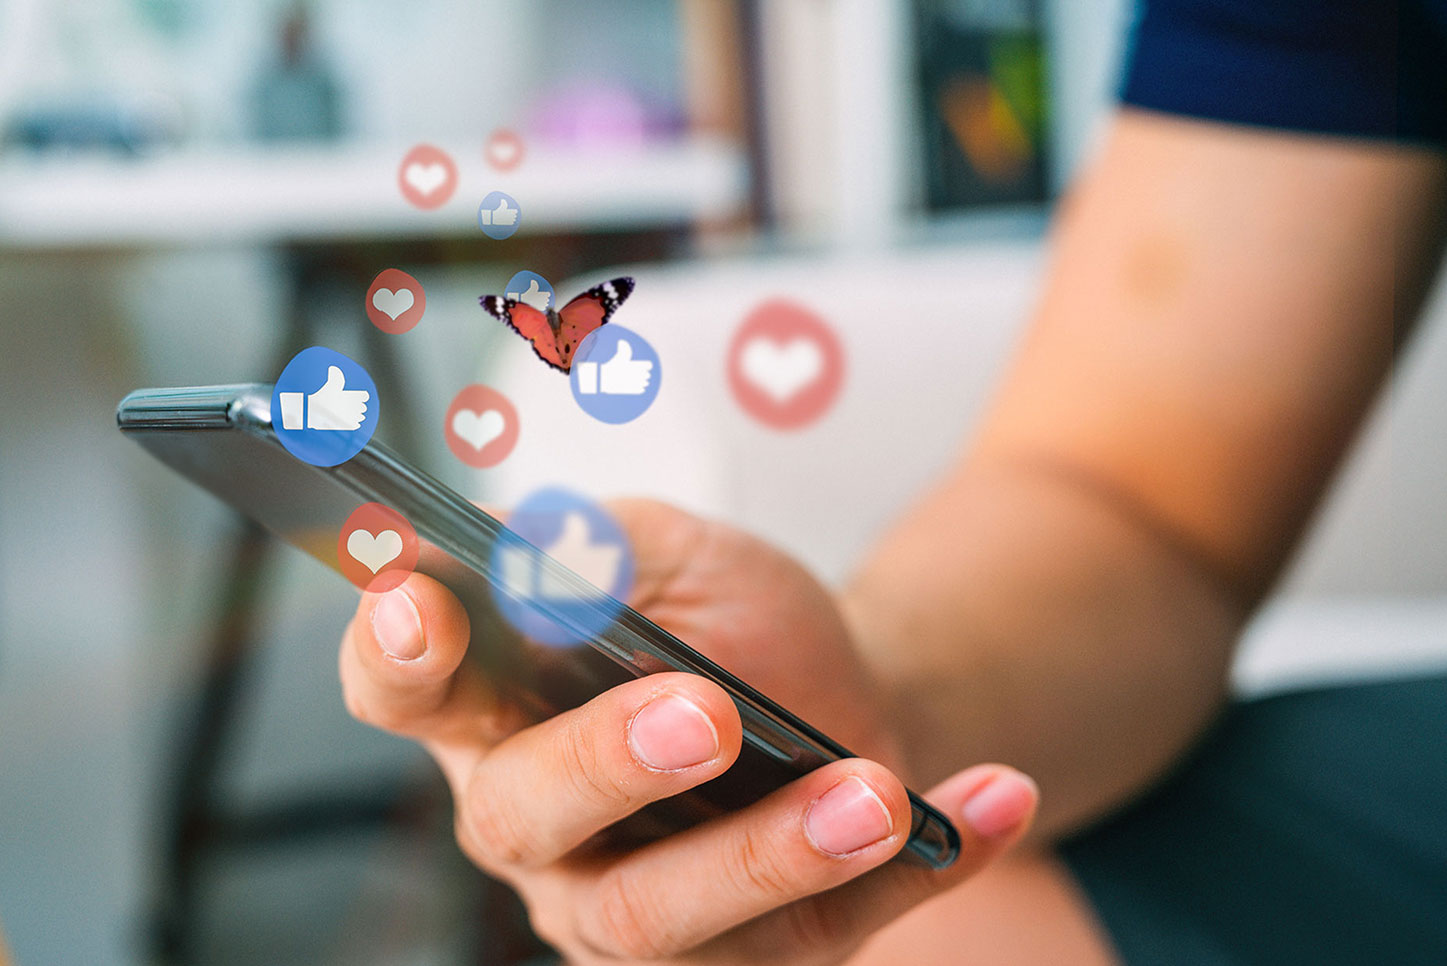 Person using smartphone for social media. Butterfly floating above.